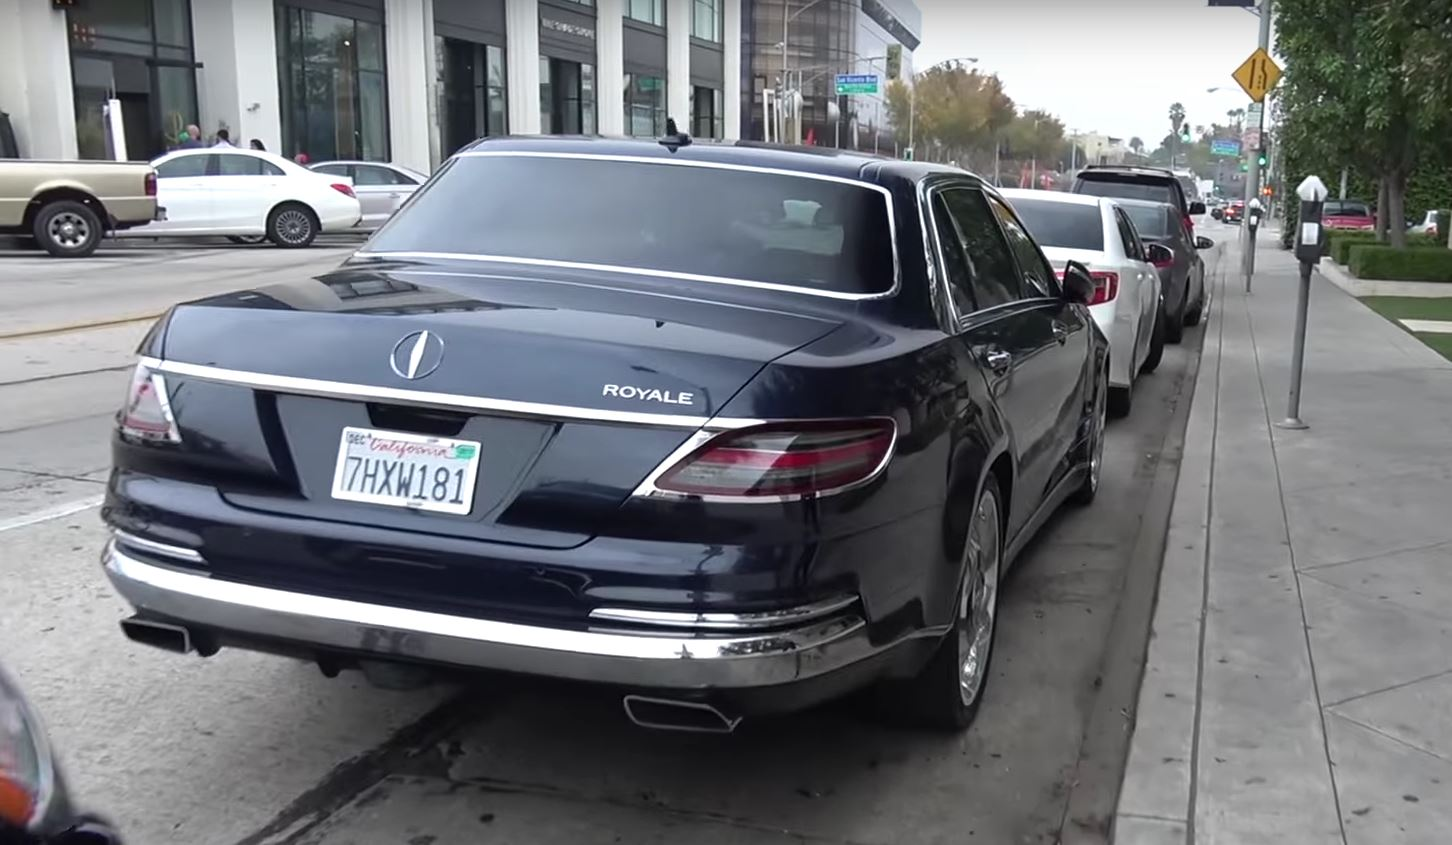 Connu Odd Mercedes S600 Royale Brought Back into Focus by New Video  XL86